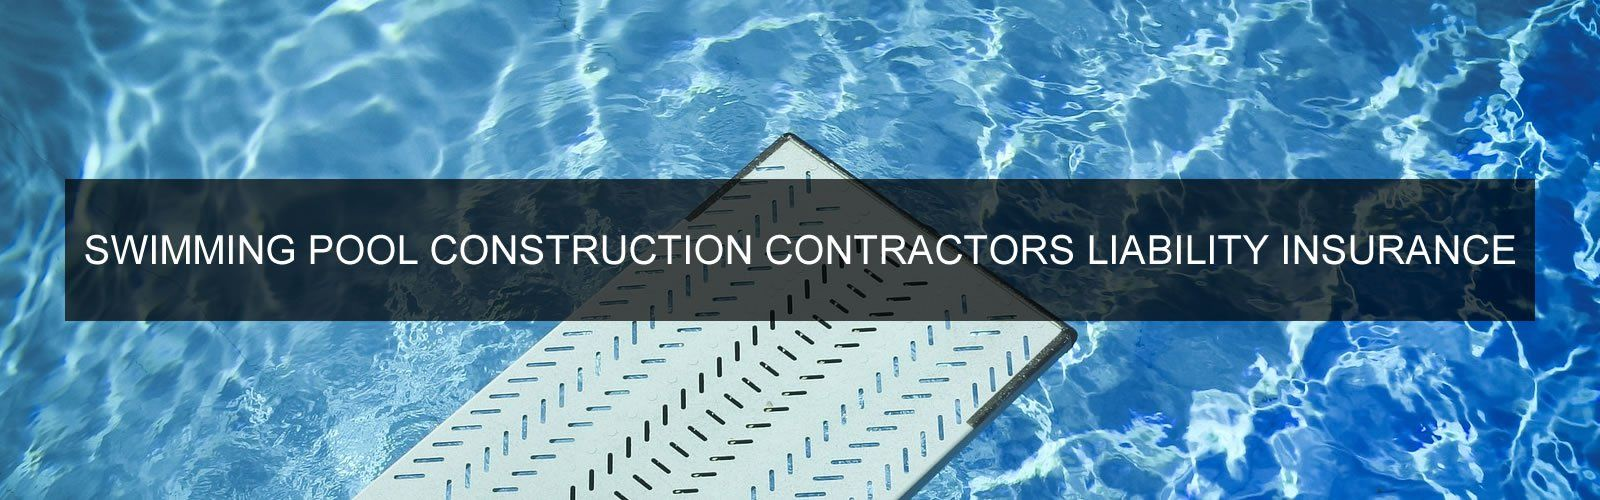 SWIMMING-POOL-AND-SPA-CONSTRUCTION-CONTRACTORS-LIABILITY-INSURANCE